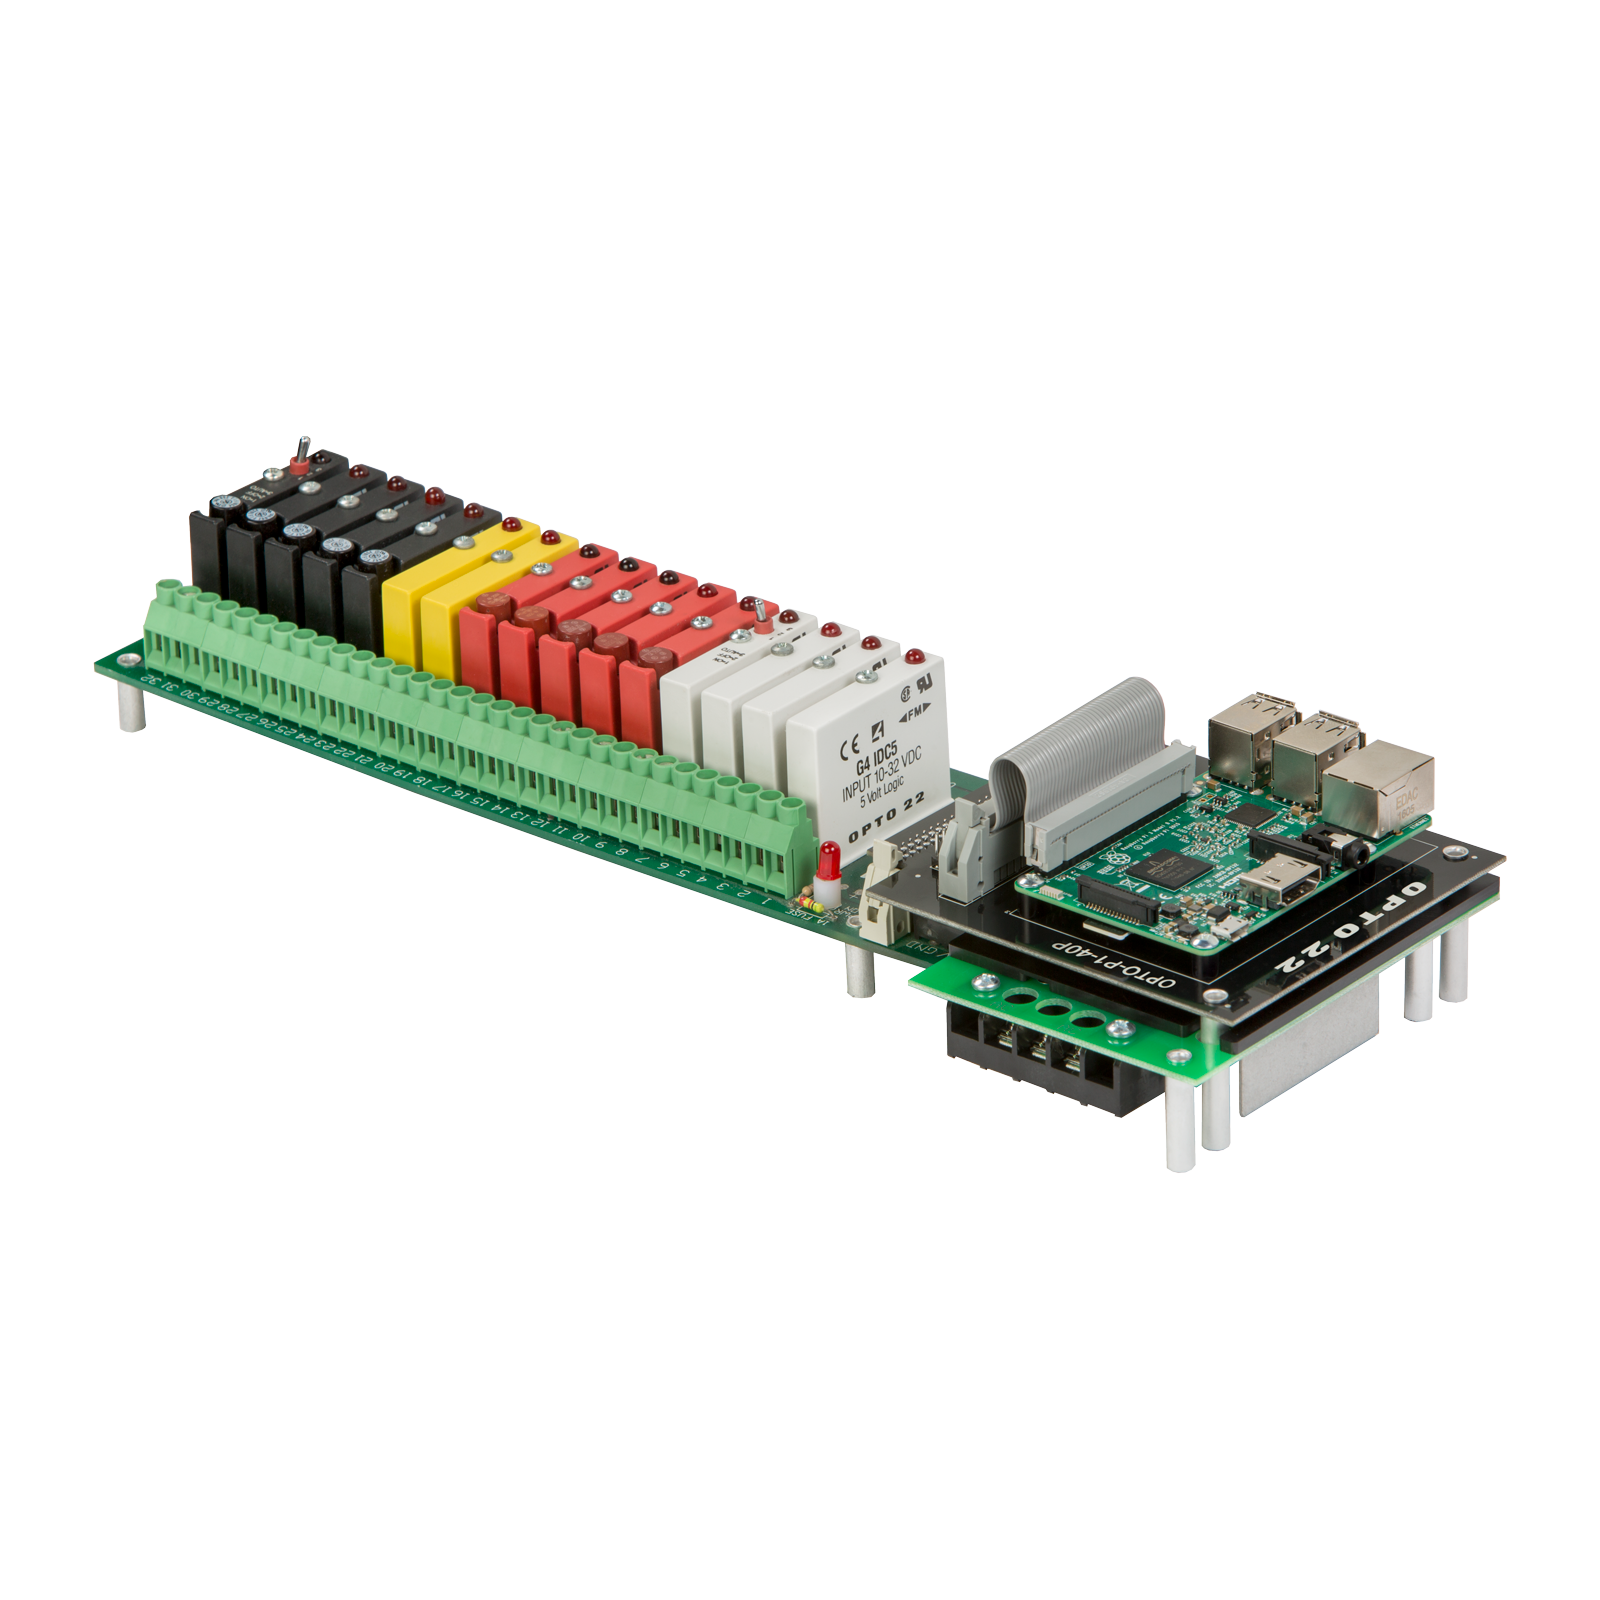 Drivers Relays And Solid State Mbed Are Given Below To Help Users Replace A Blown Circuit Breaker Easily Board With Space For Assorted Opto22 I O Modules Small Computer Such As Raspberry Pi Can Add Iot Features Industrial Control